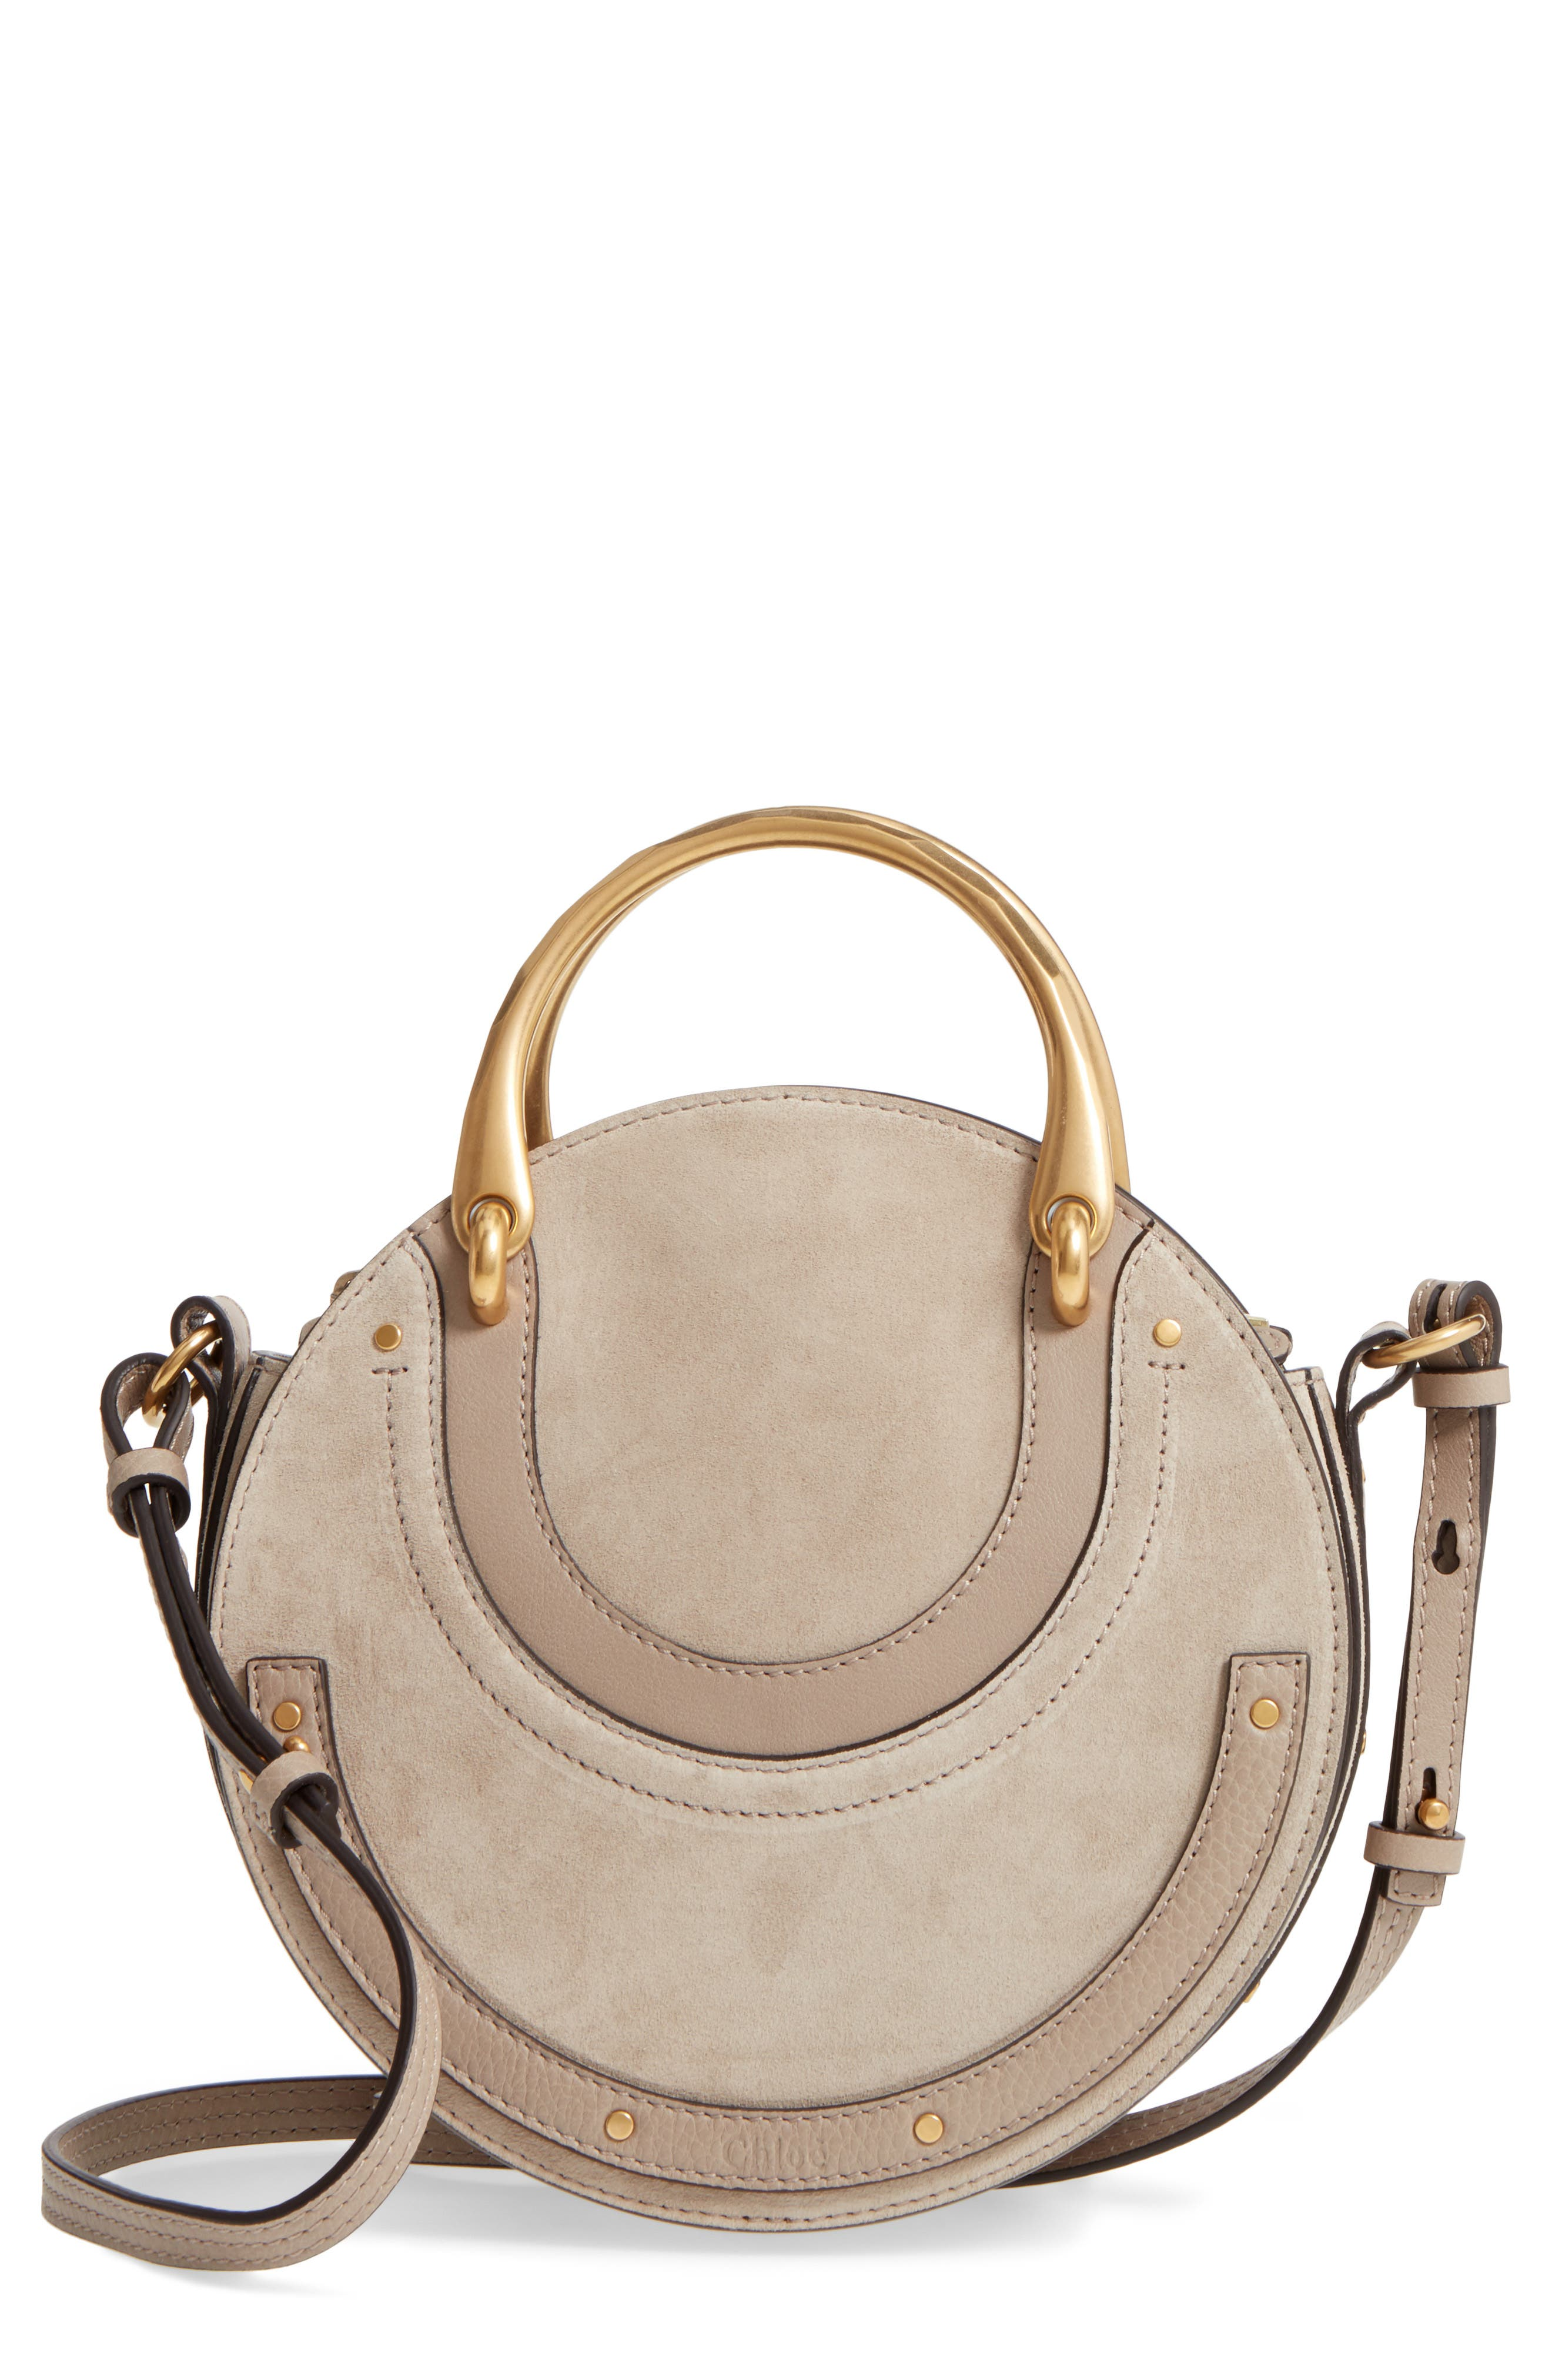 Chloé Small Pixie Top Handle Suede Satchel